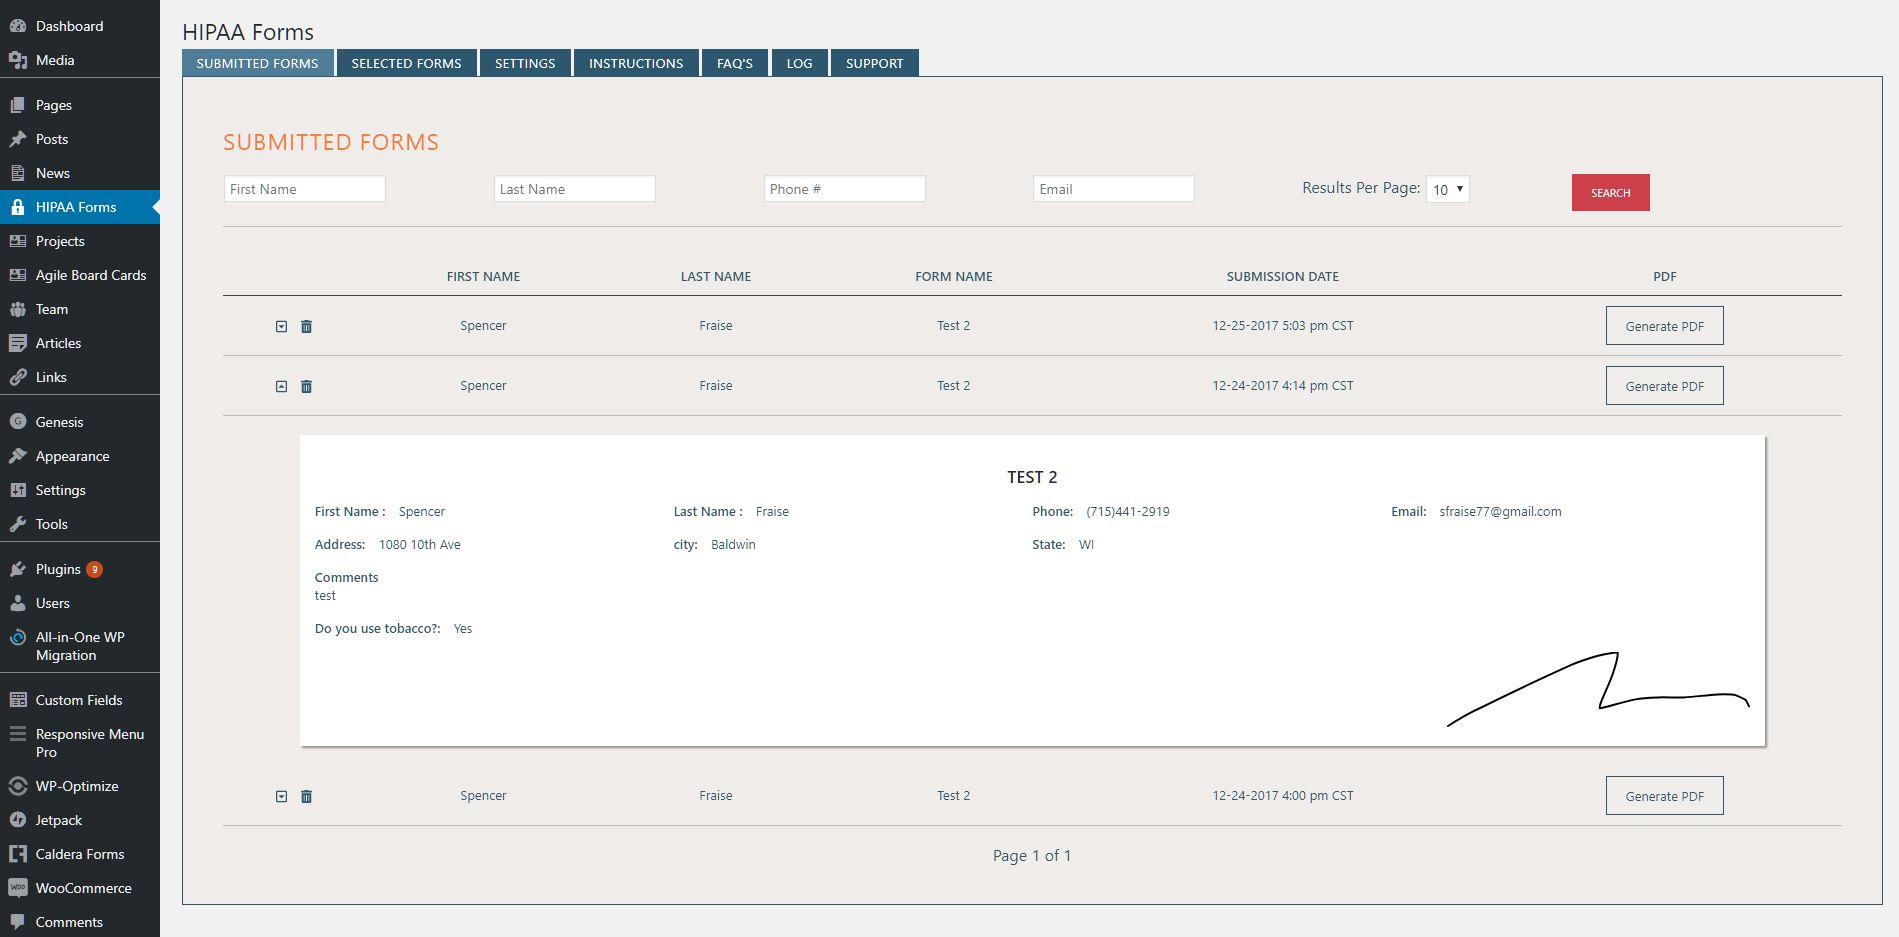 This is the interface showing the submitted forms.